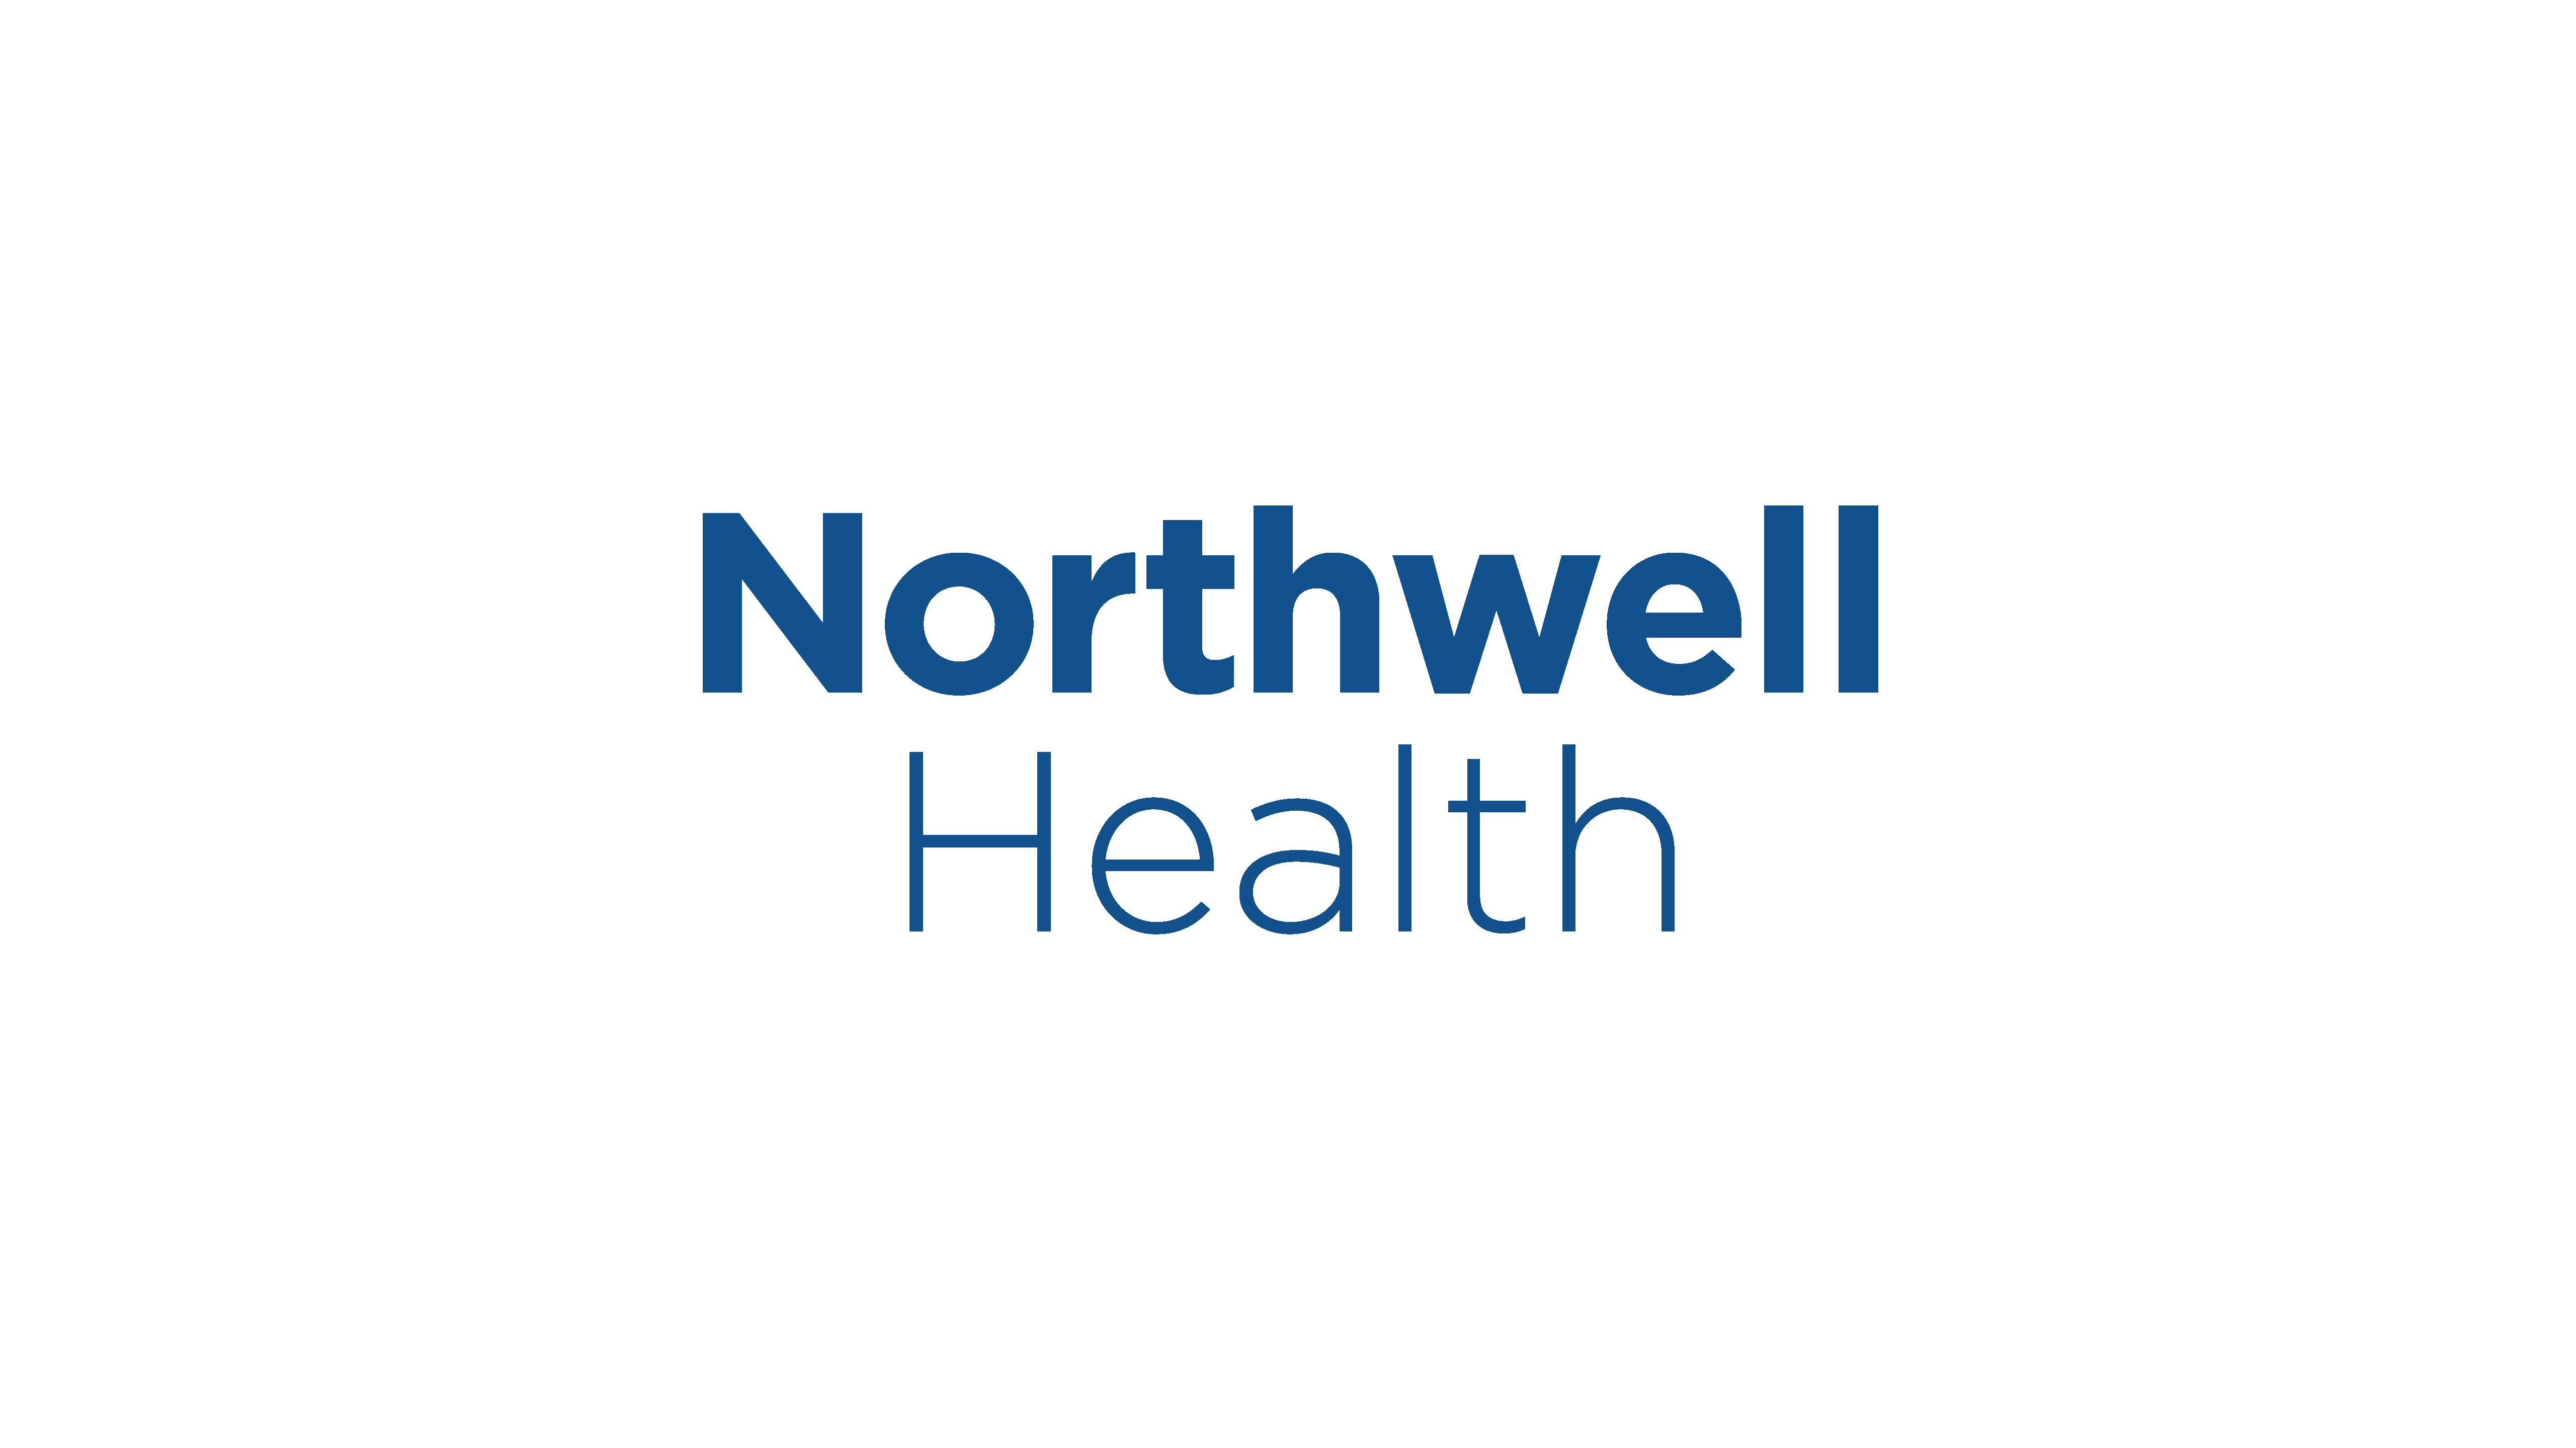 North ShoreLIJ to Change Name to Northwell Health